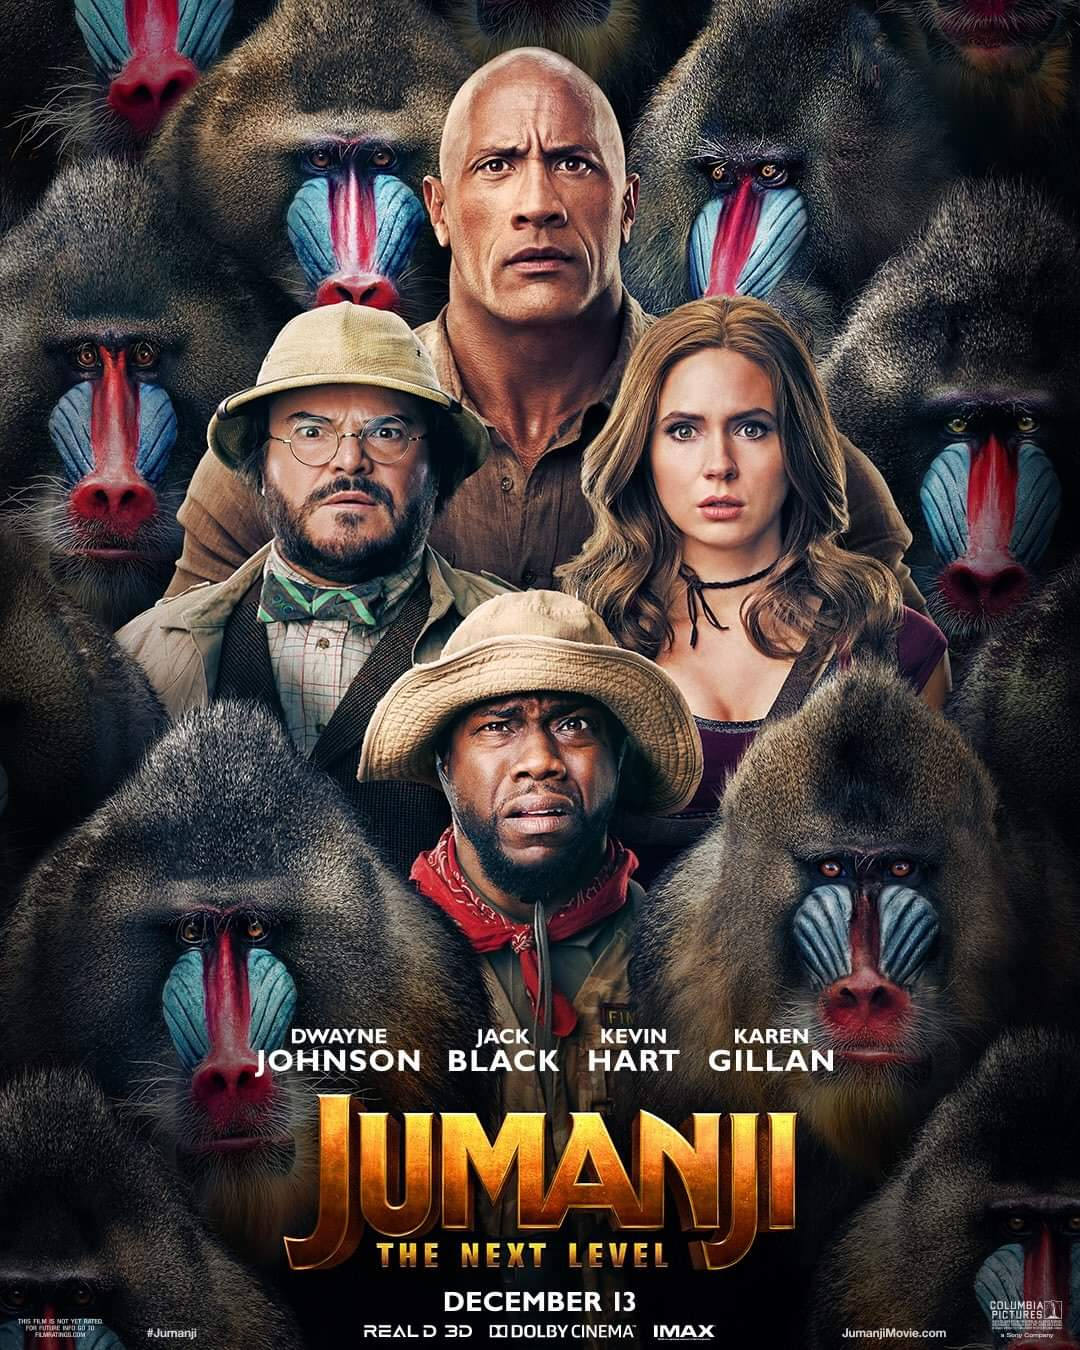 Jumanji: The Next Level' Coming to Theaters December 13 – Nerds ...